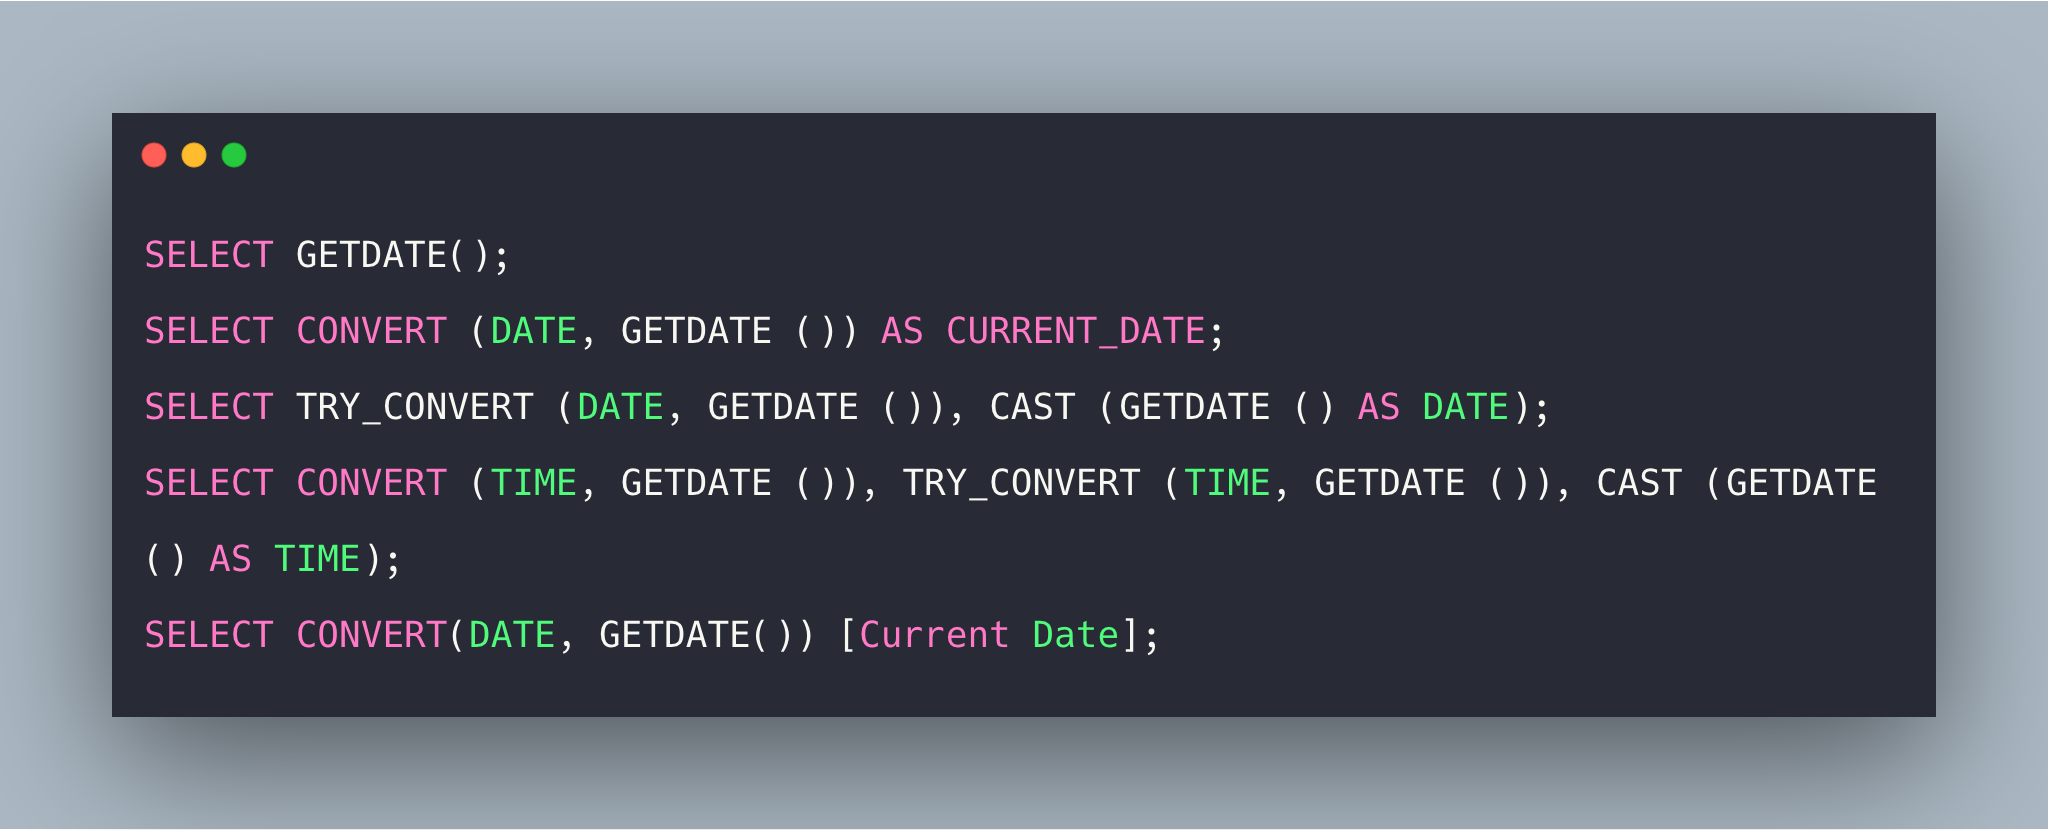 SQL GETDATE Function Example